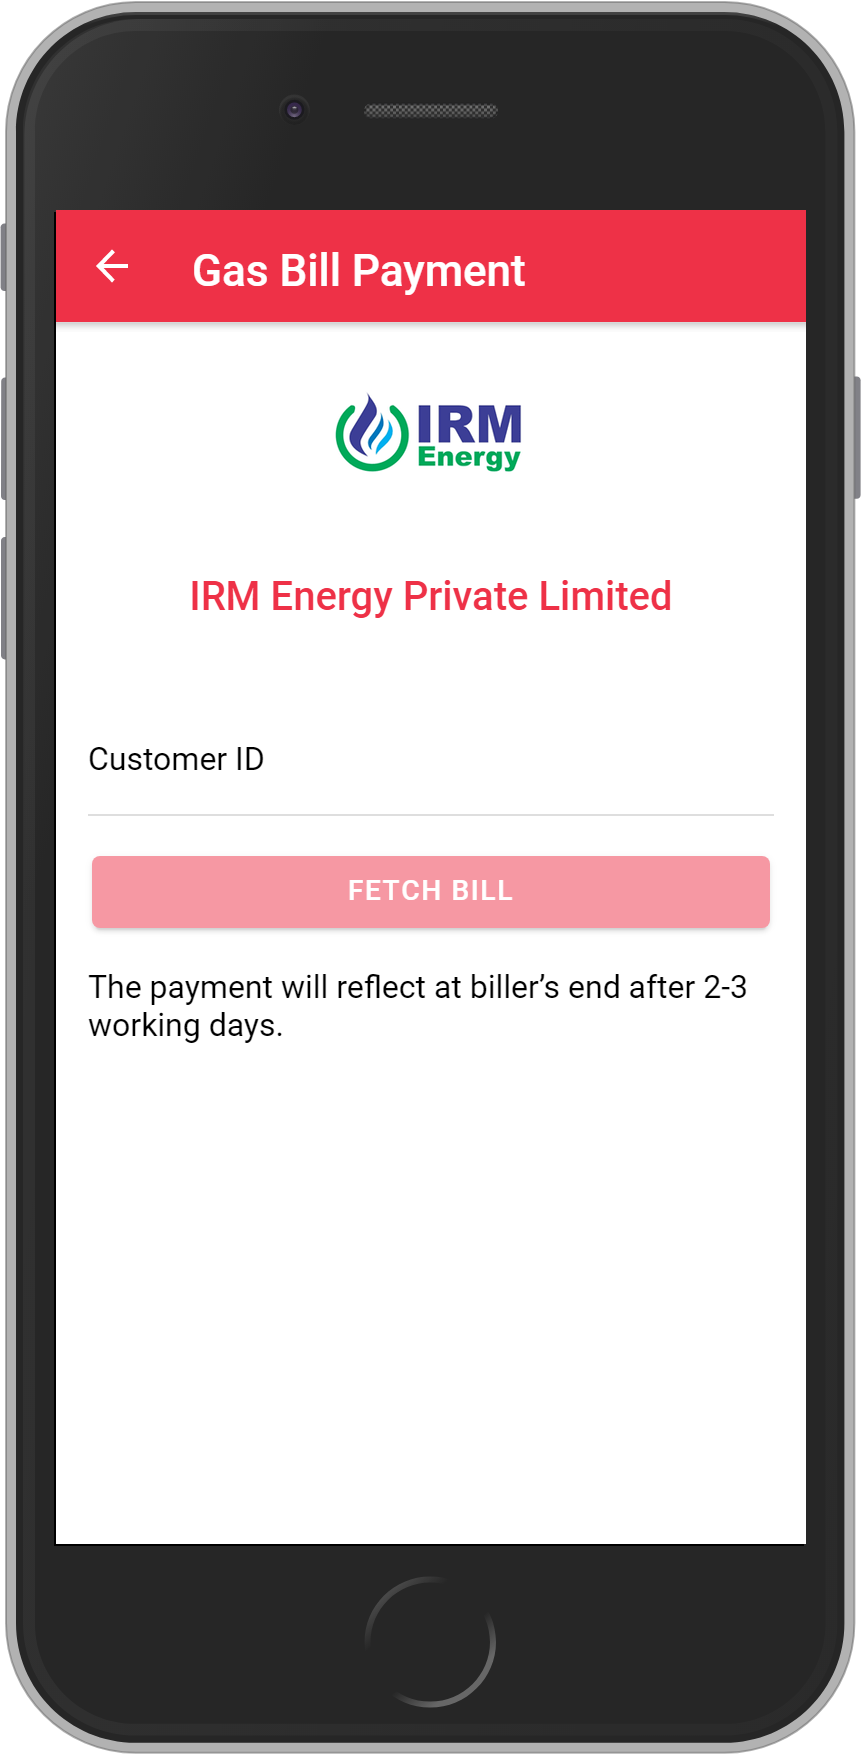 Get UNLIMITED <b>0.1%</b> CASHBACK on IRM Energy Private Limited Bill Payment.